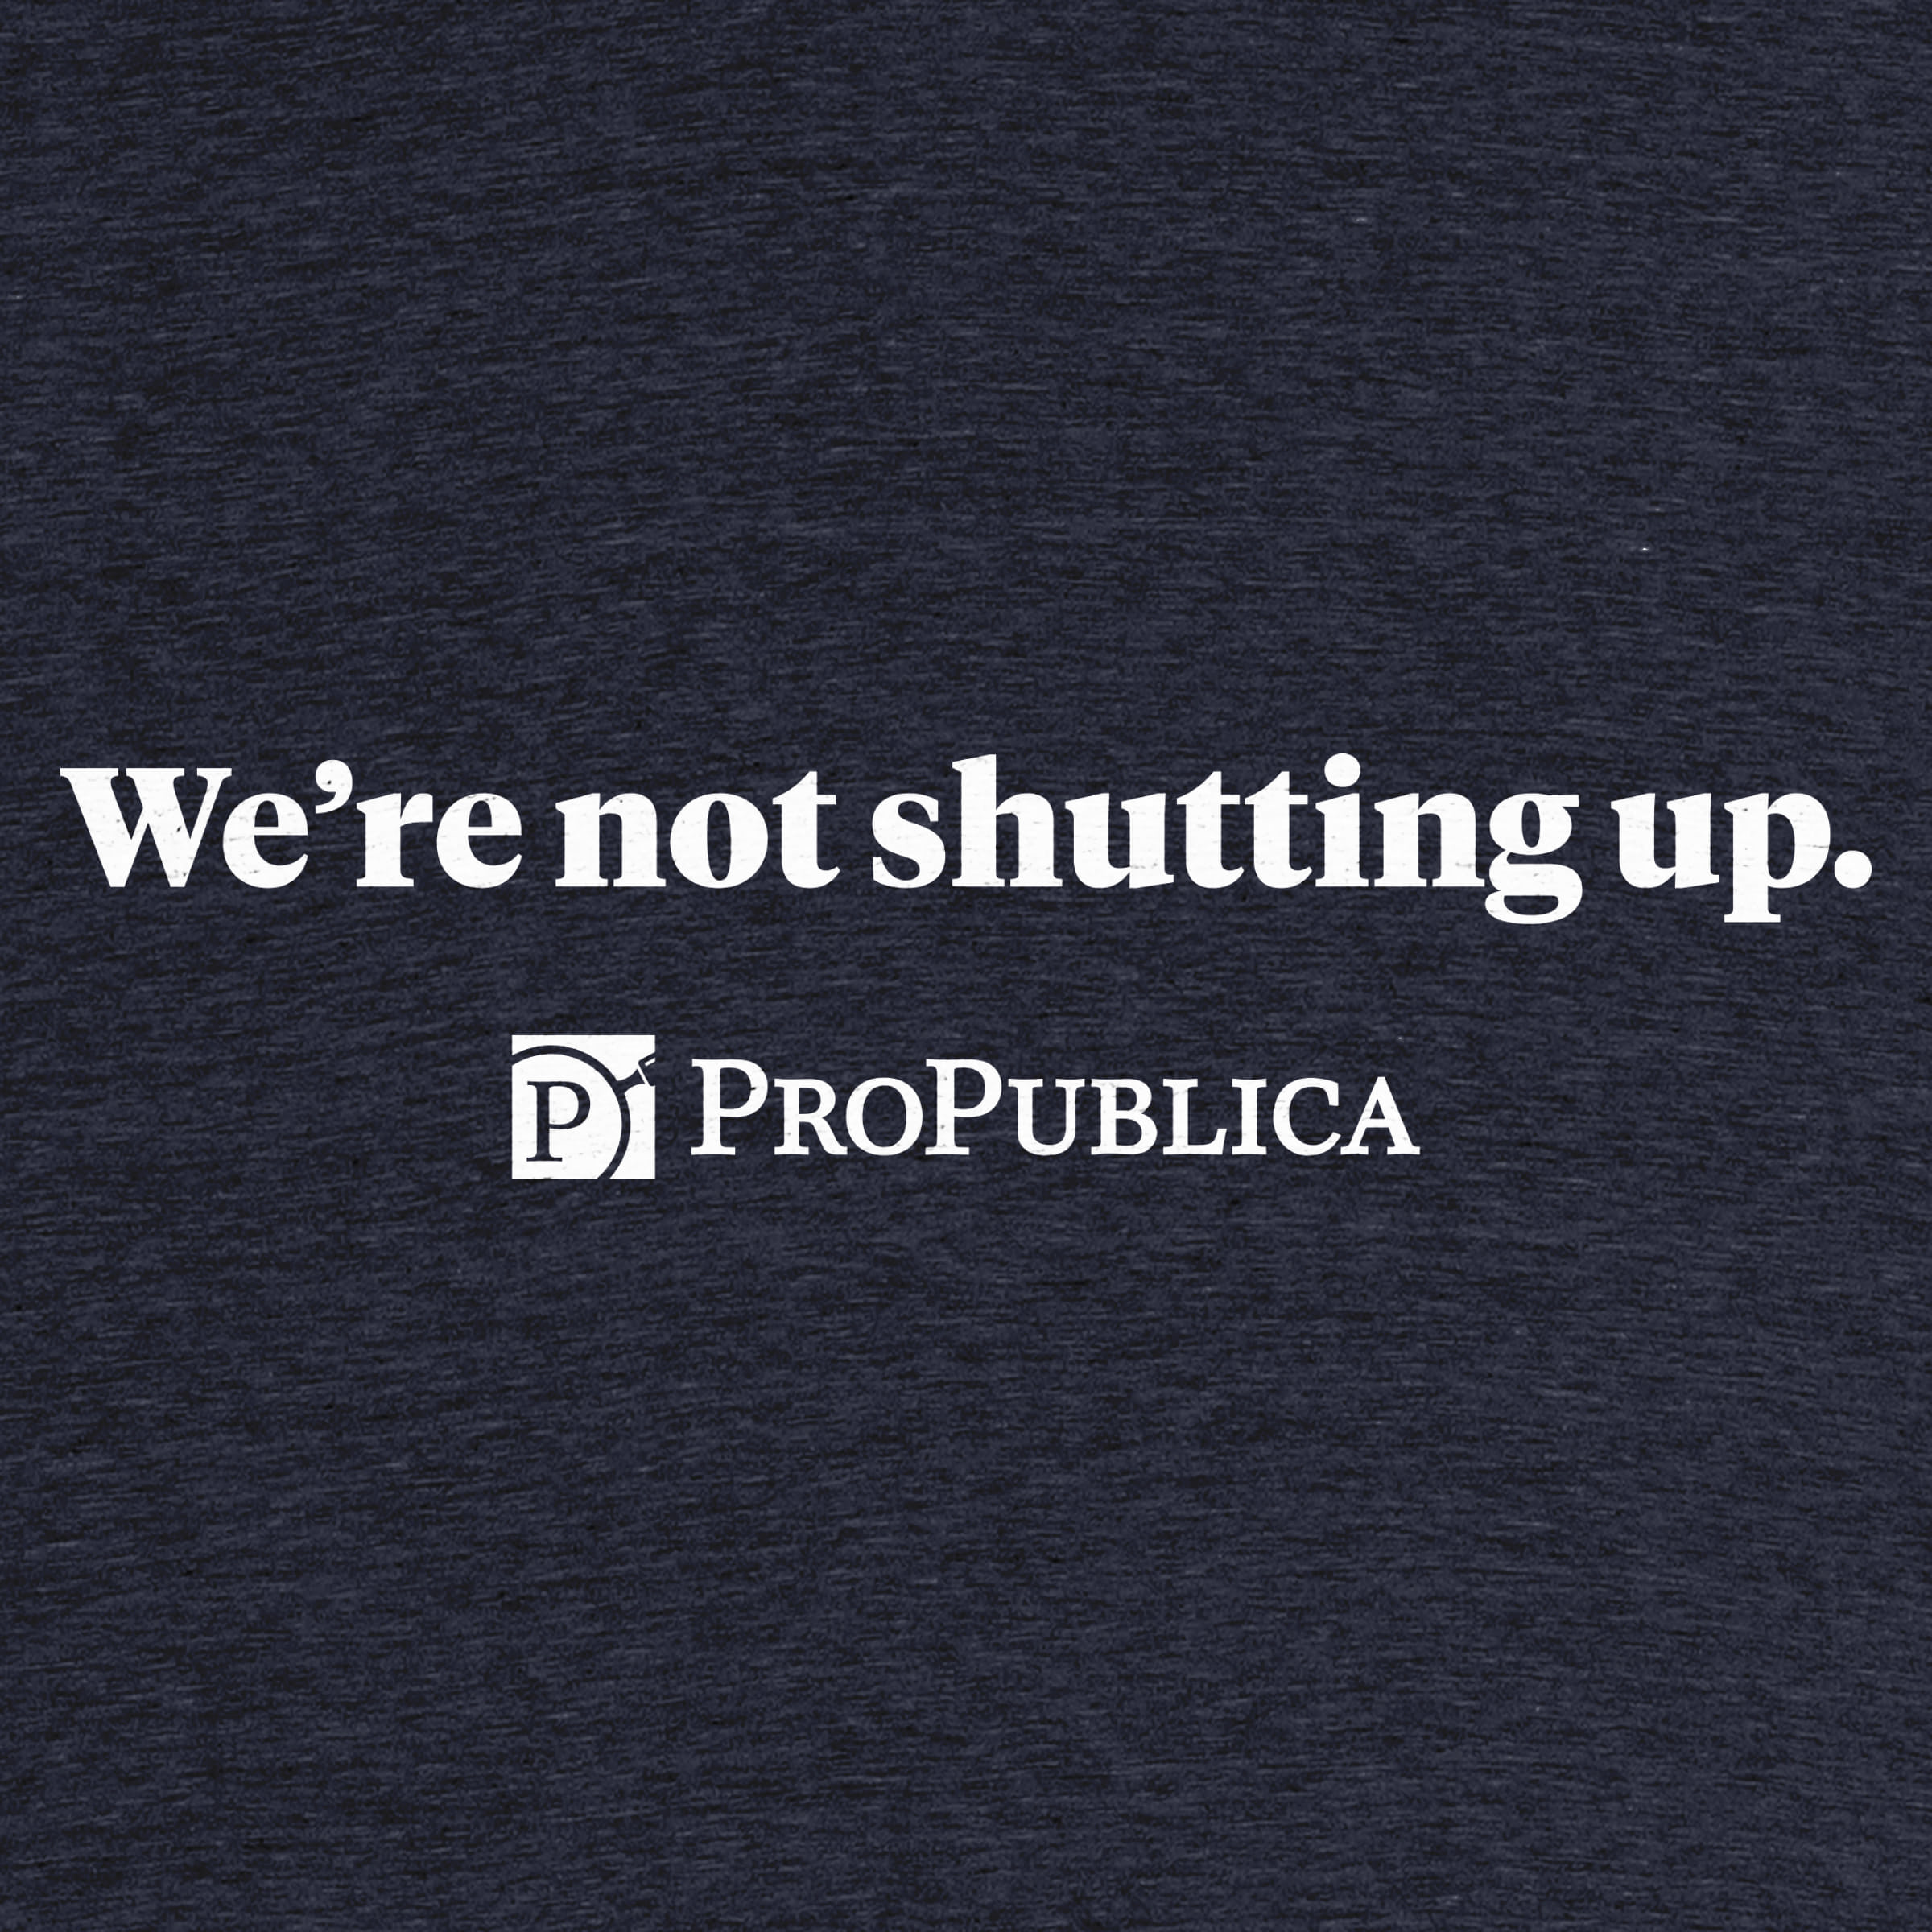 Cotton Bureau: We're Not Shutting Up